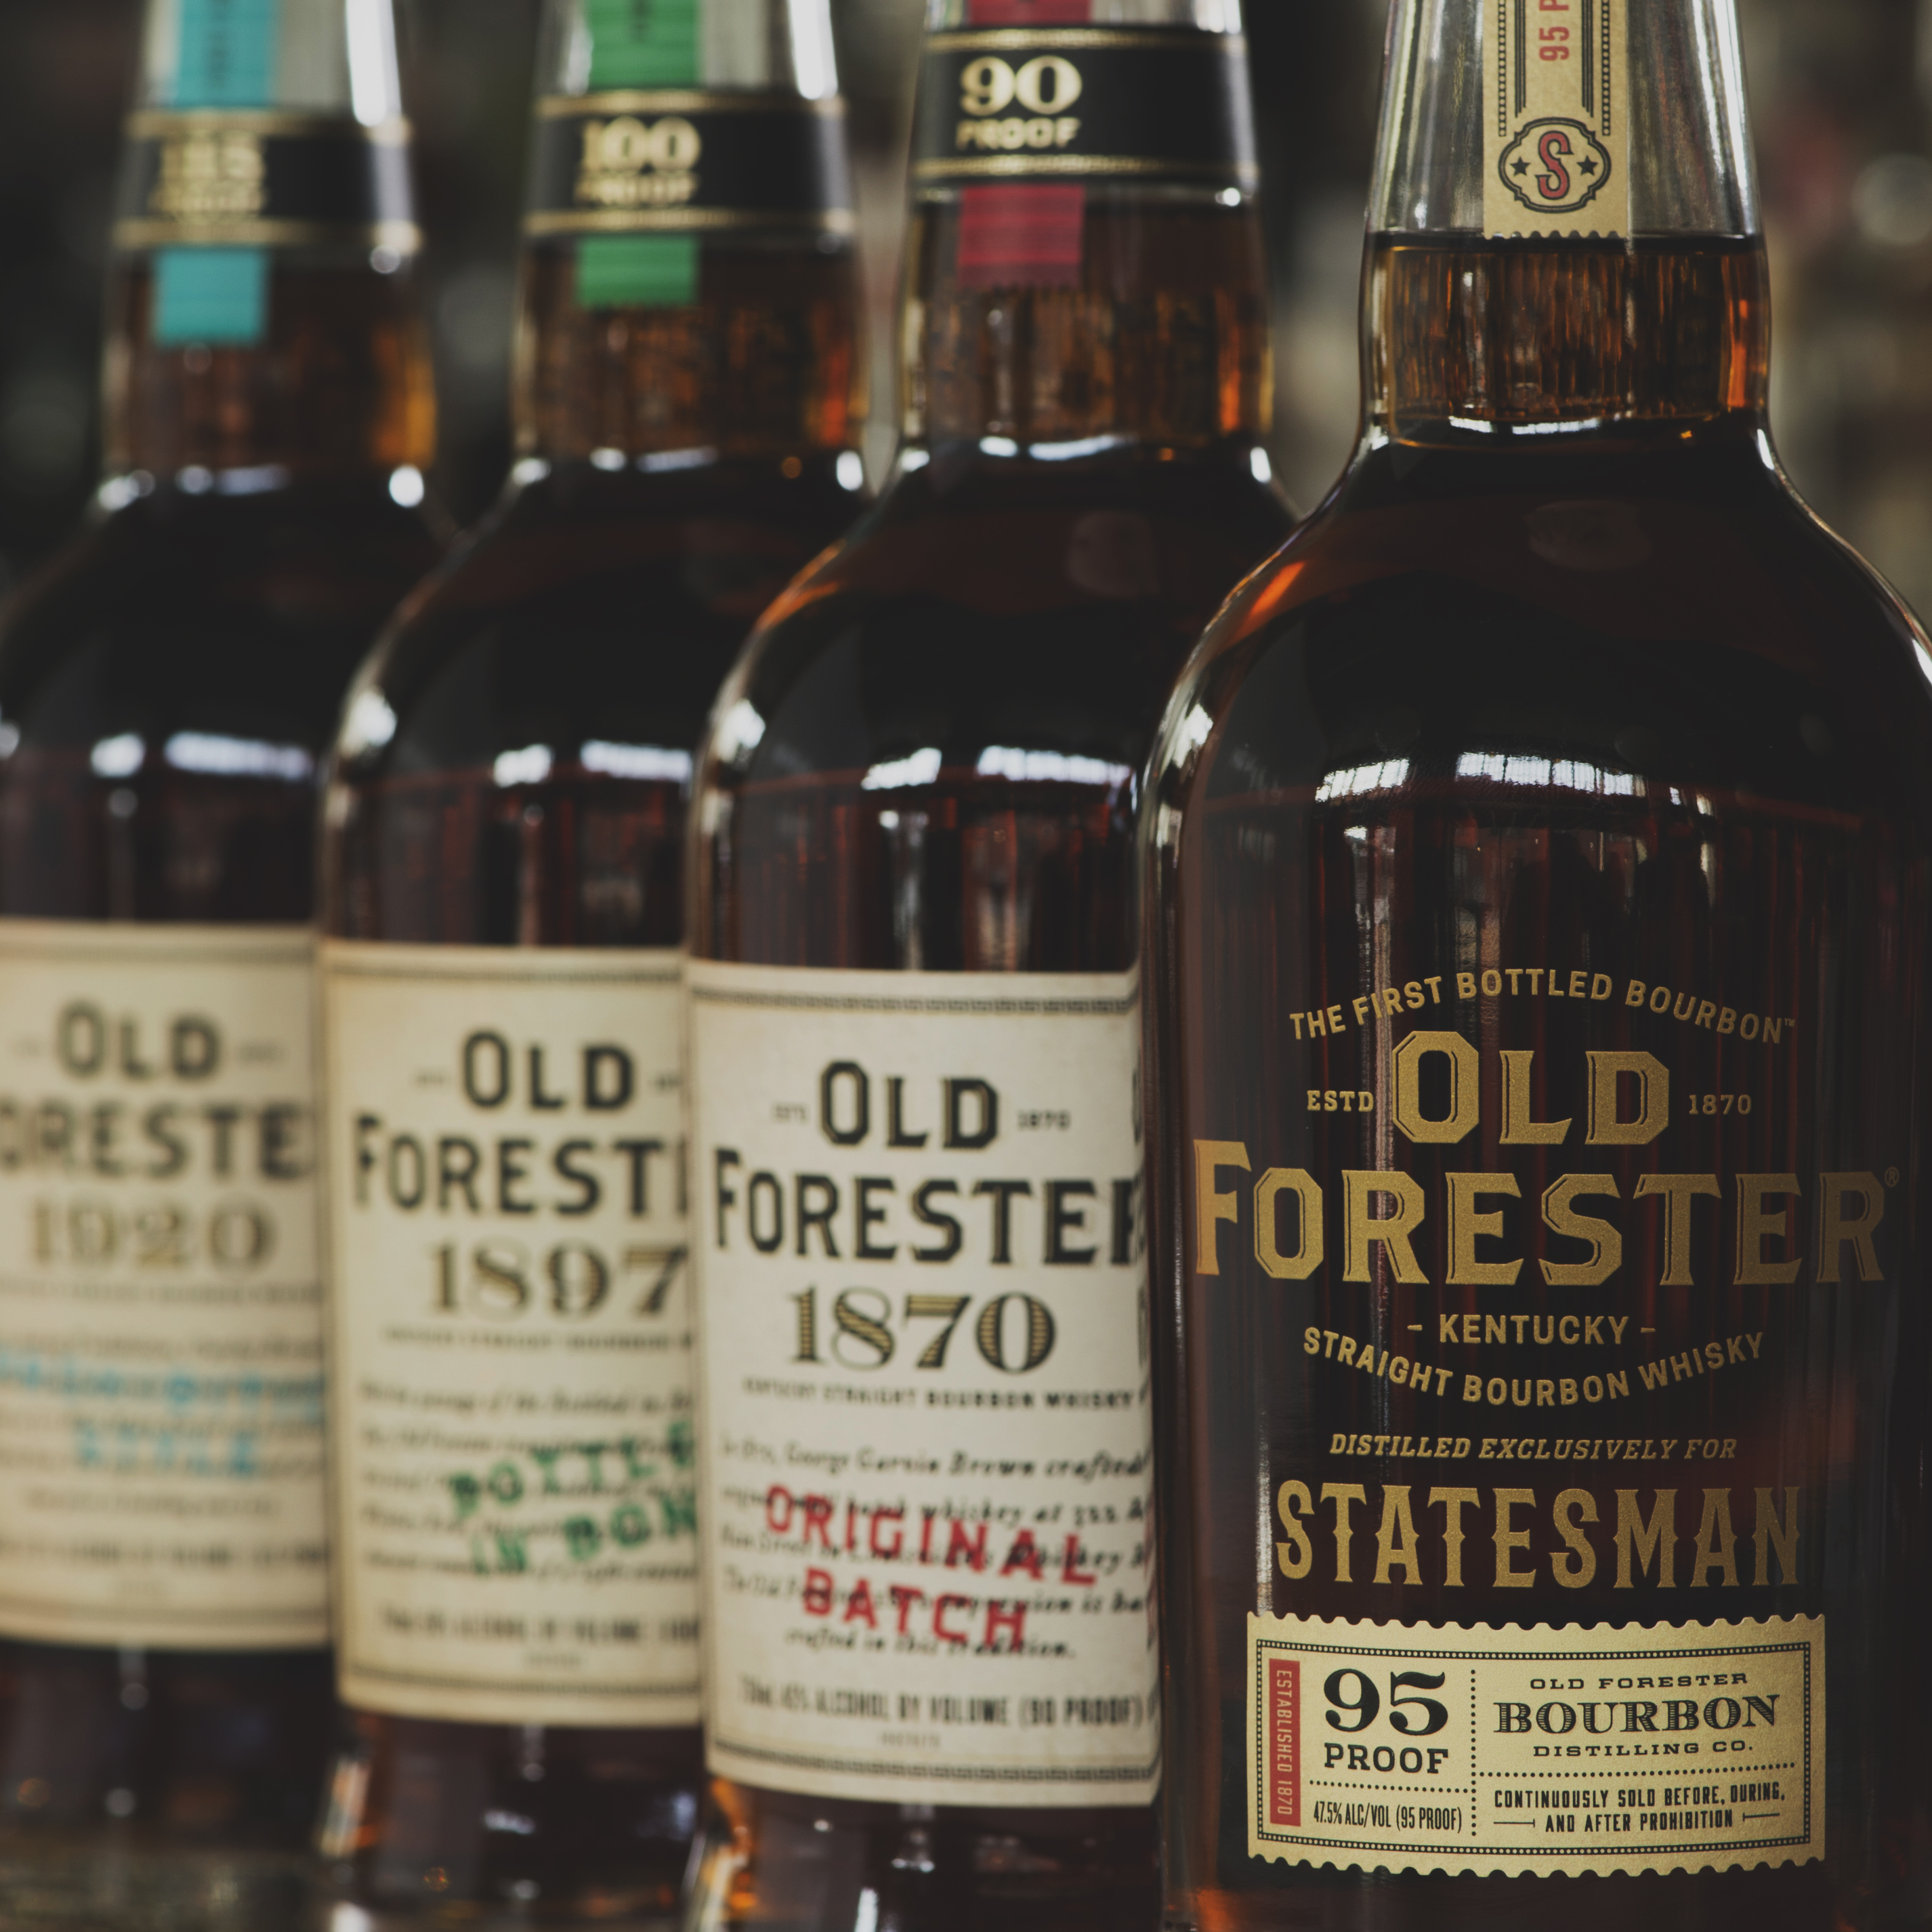 Old Forester Family of Brands